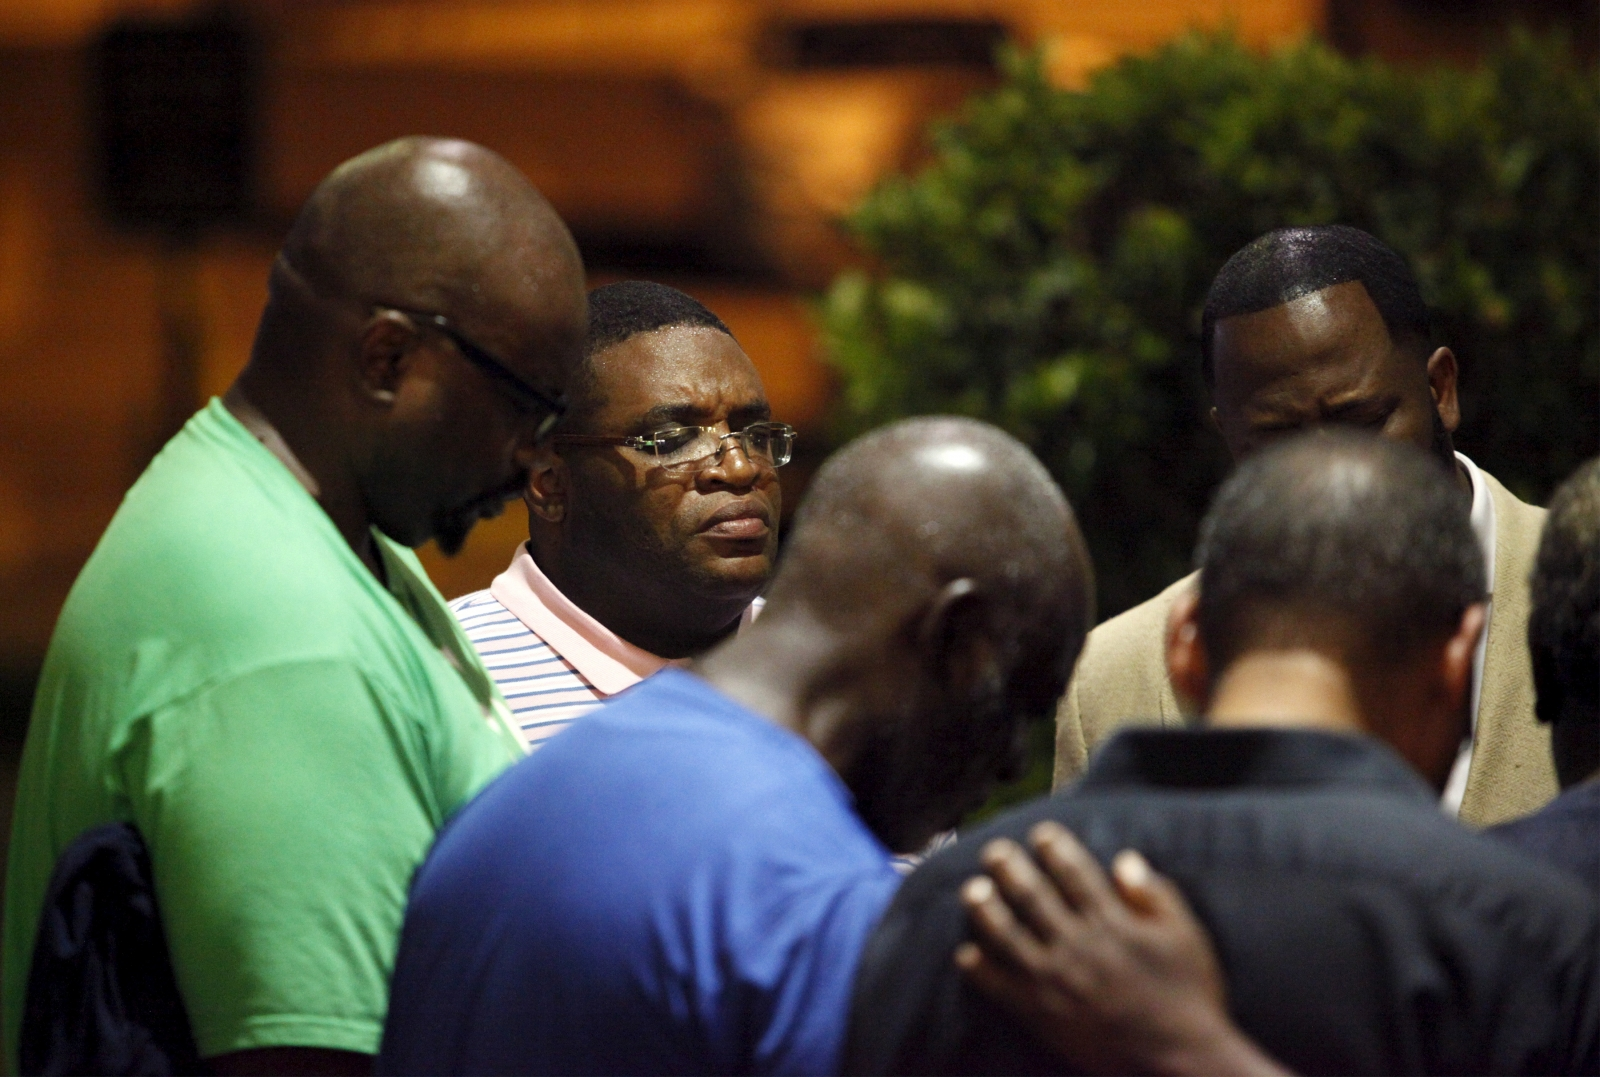 Charleston Shooting: Why Was The 'Mother Emanuel' Church